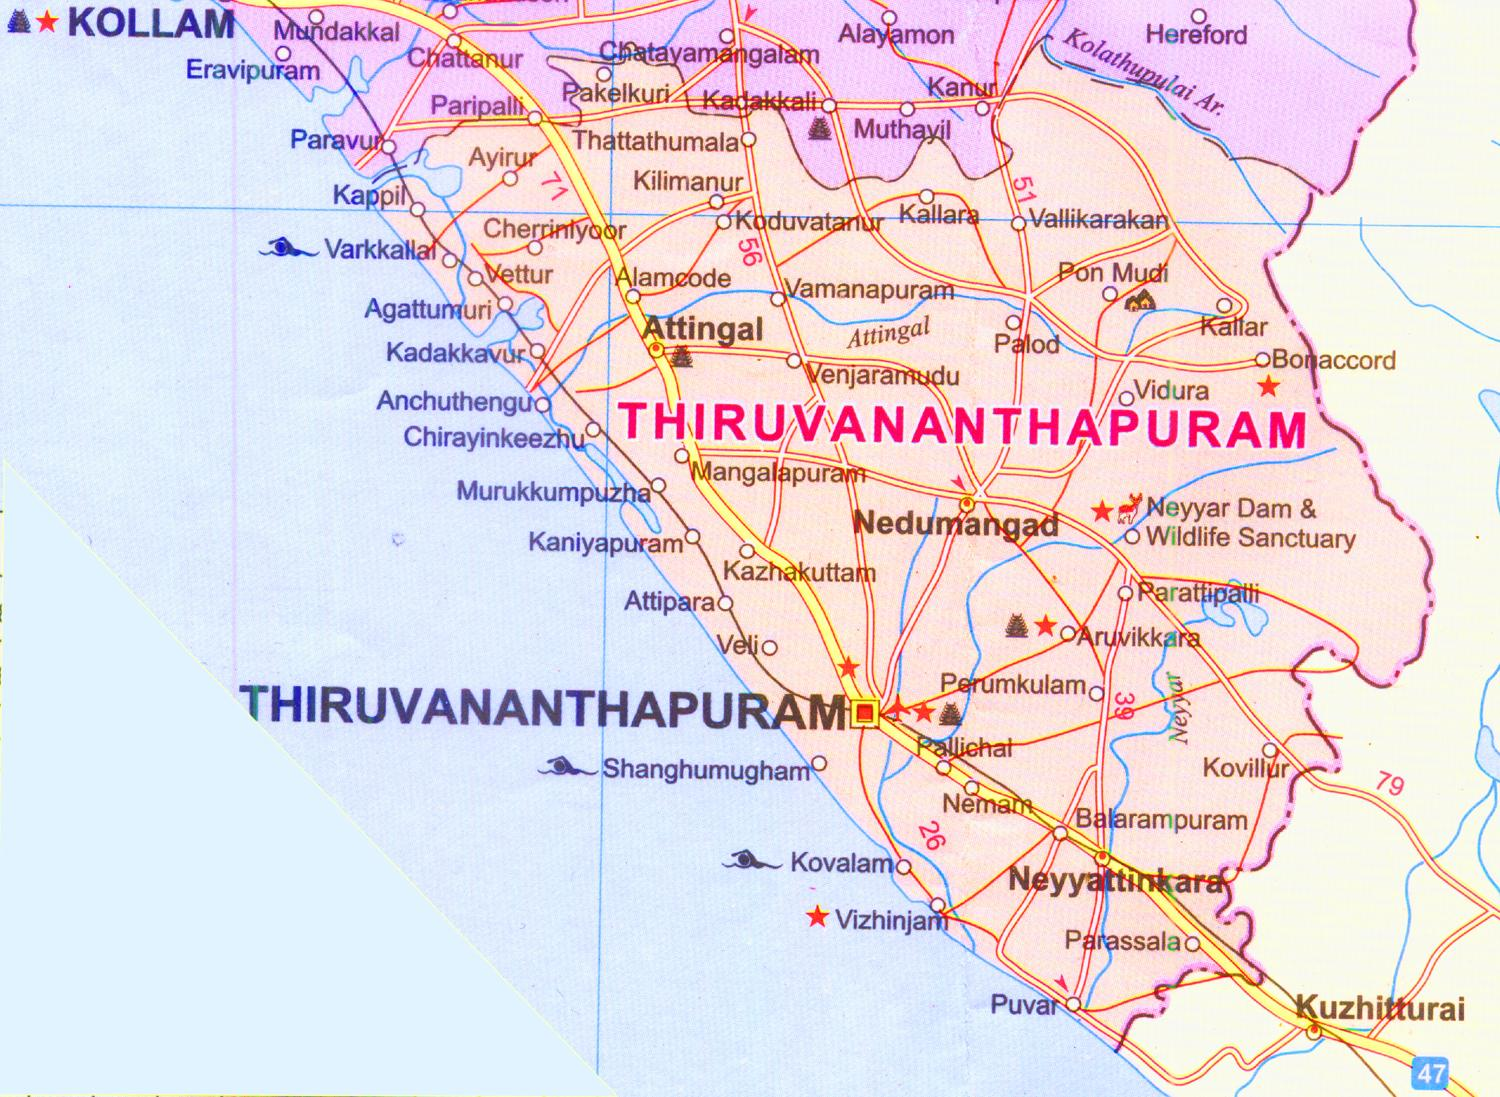 Thiruvananthapuram India  city images : Some of the popular places in trivandrum are listed below,